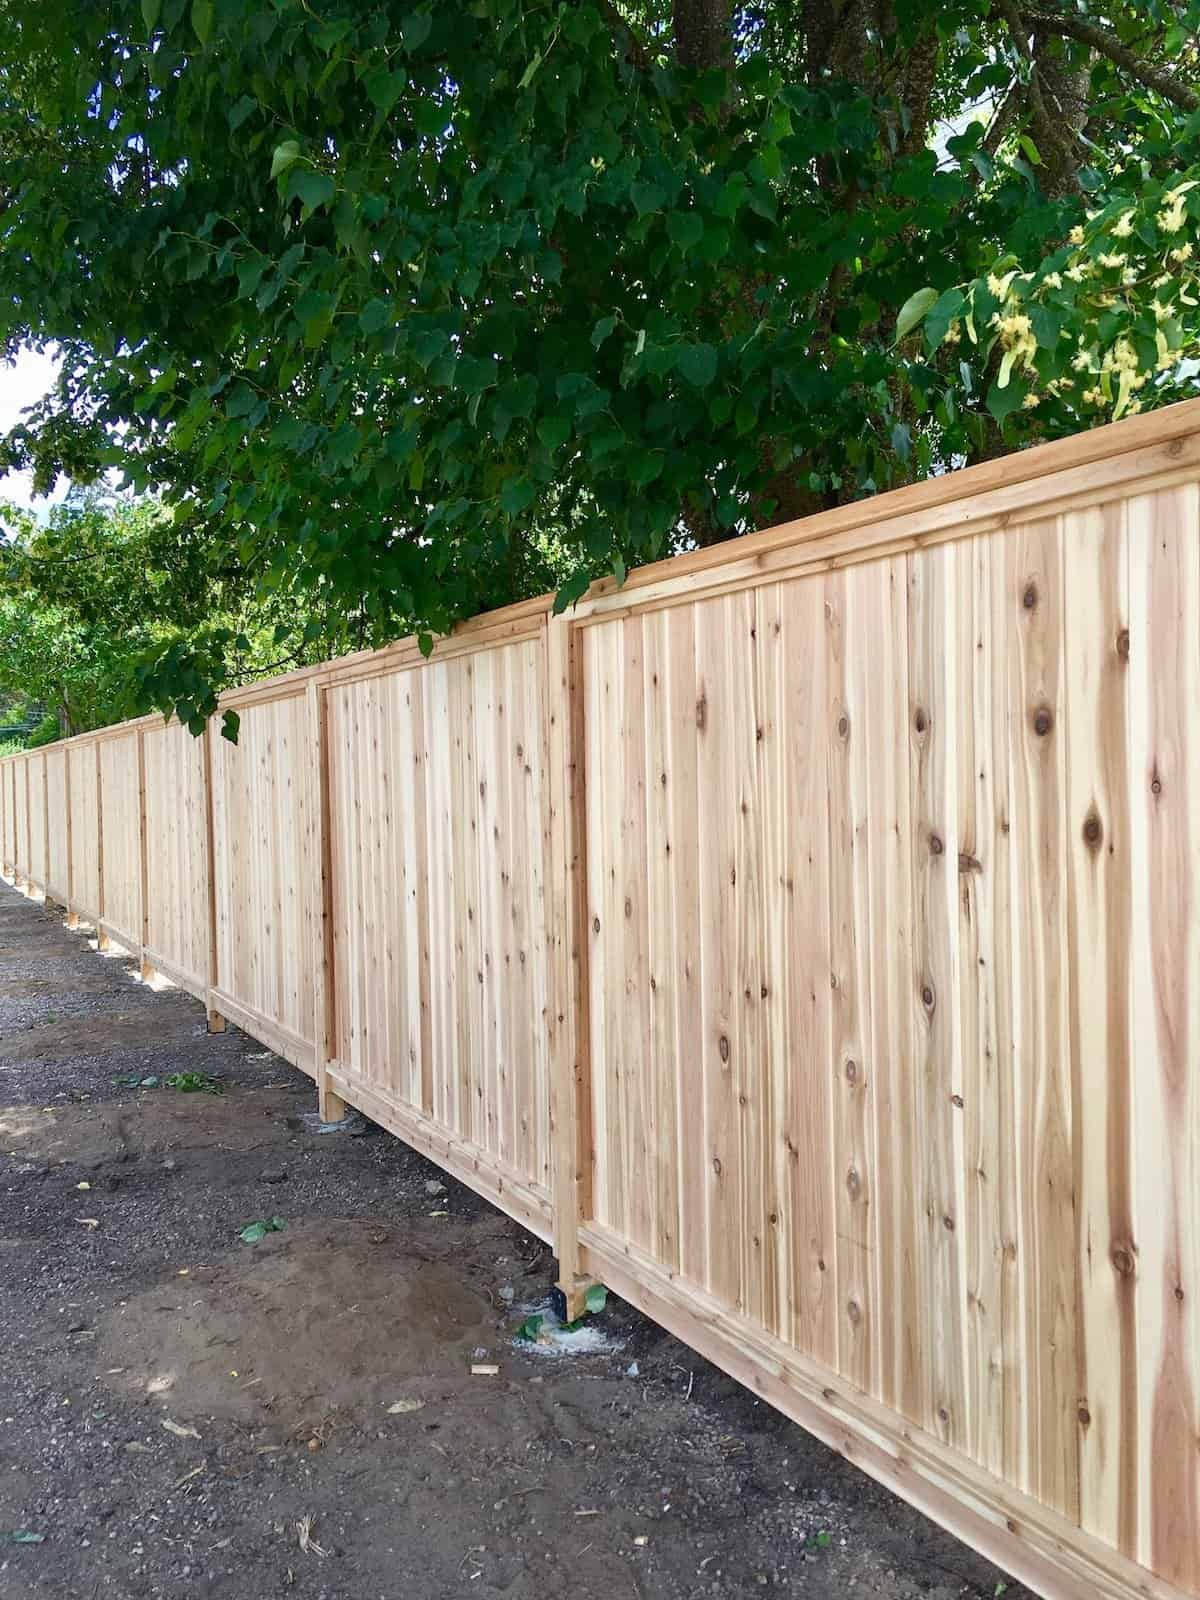 Privacy Fence: Using Wood Fence Panels To Create Privacy ... on Decorations For Privacy Fence id=20682